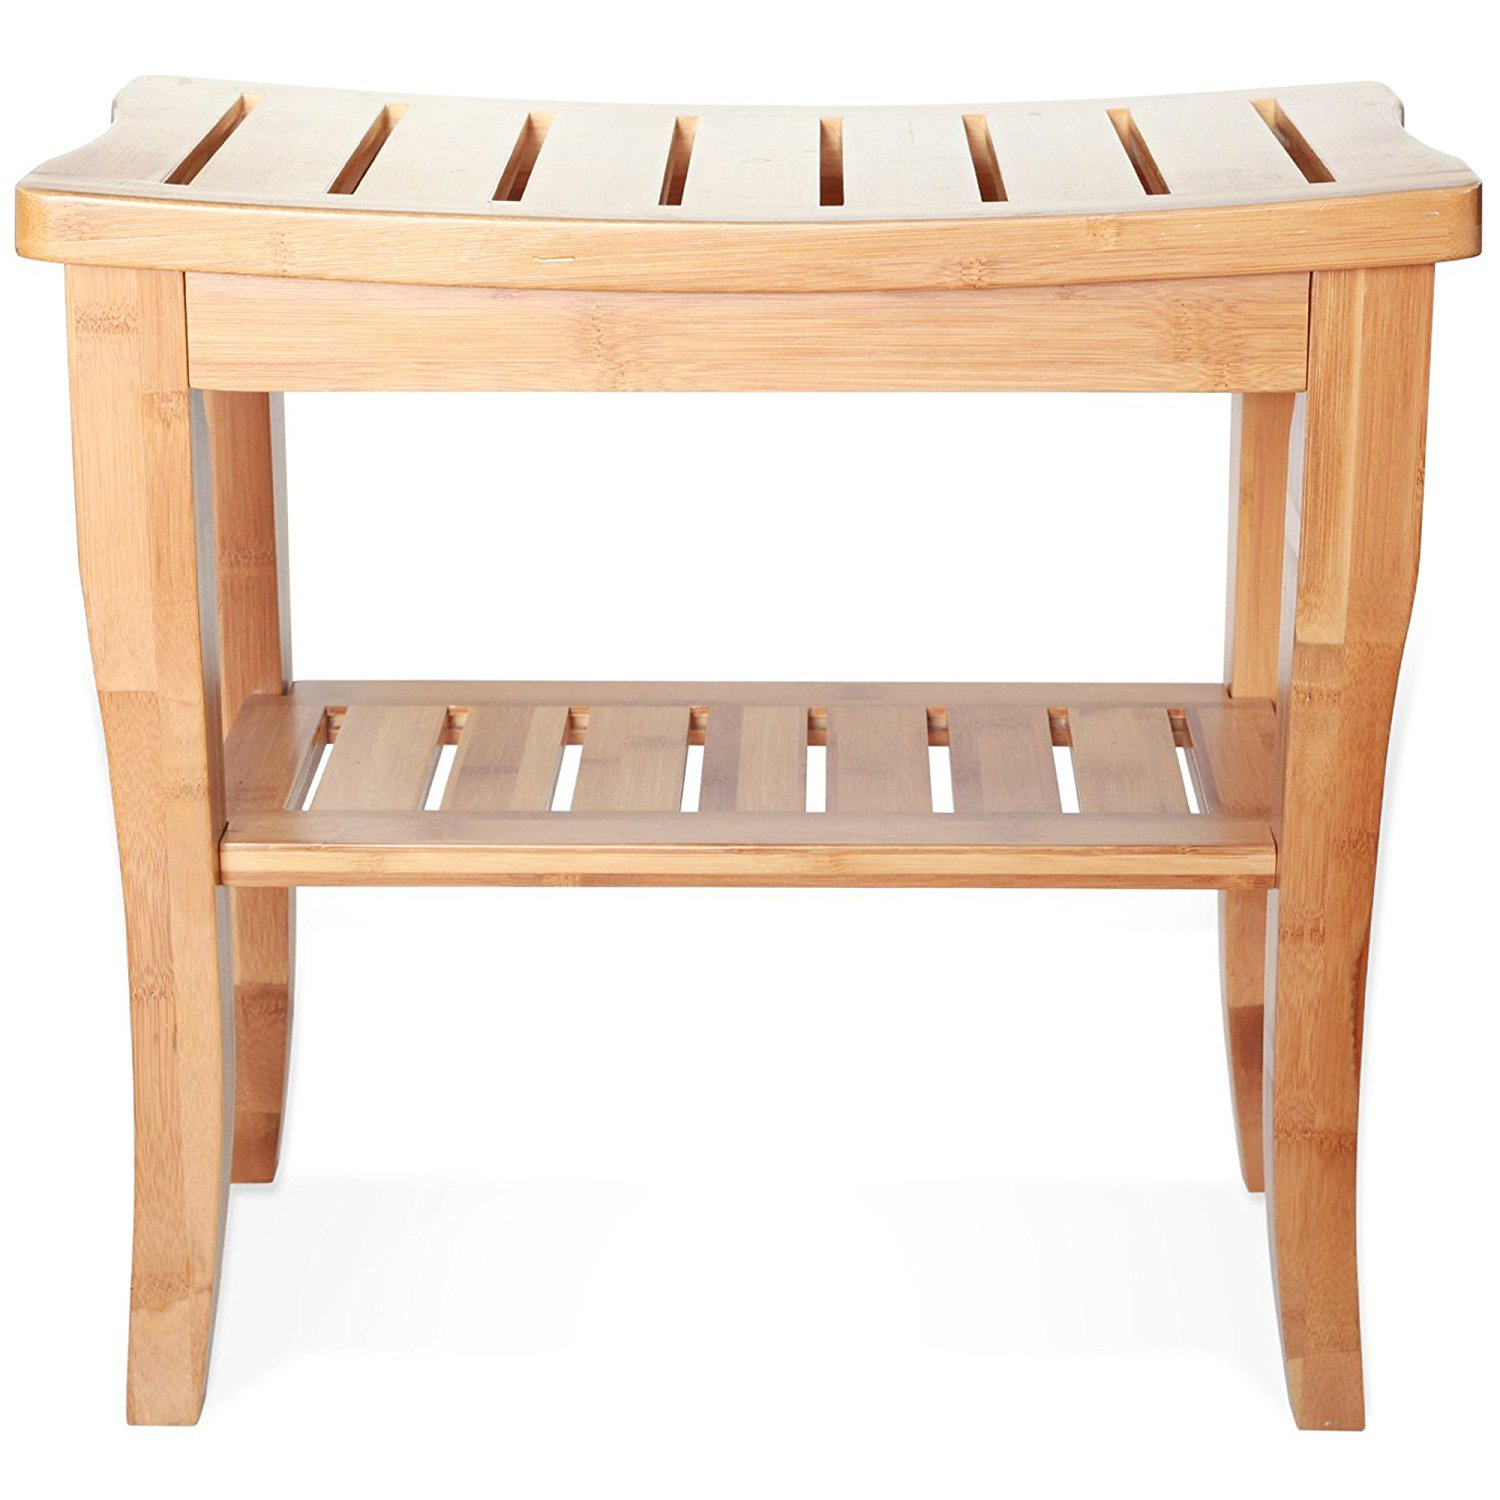 Teak Shower Seat, Teak Shower Seat Suppliers and Manufacturers at ...